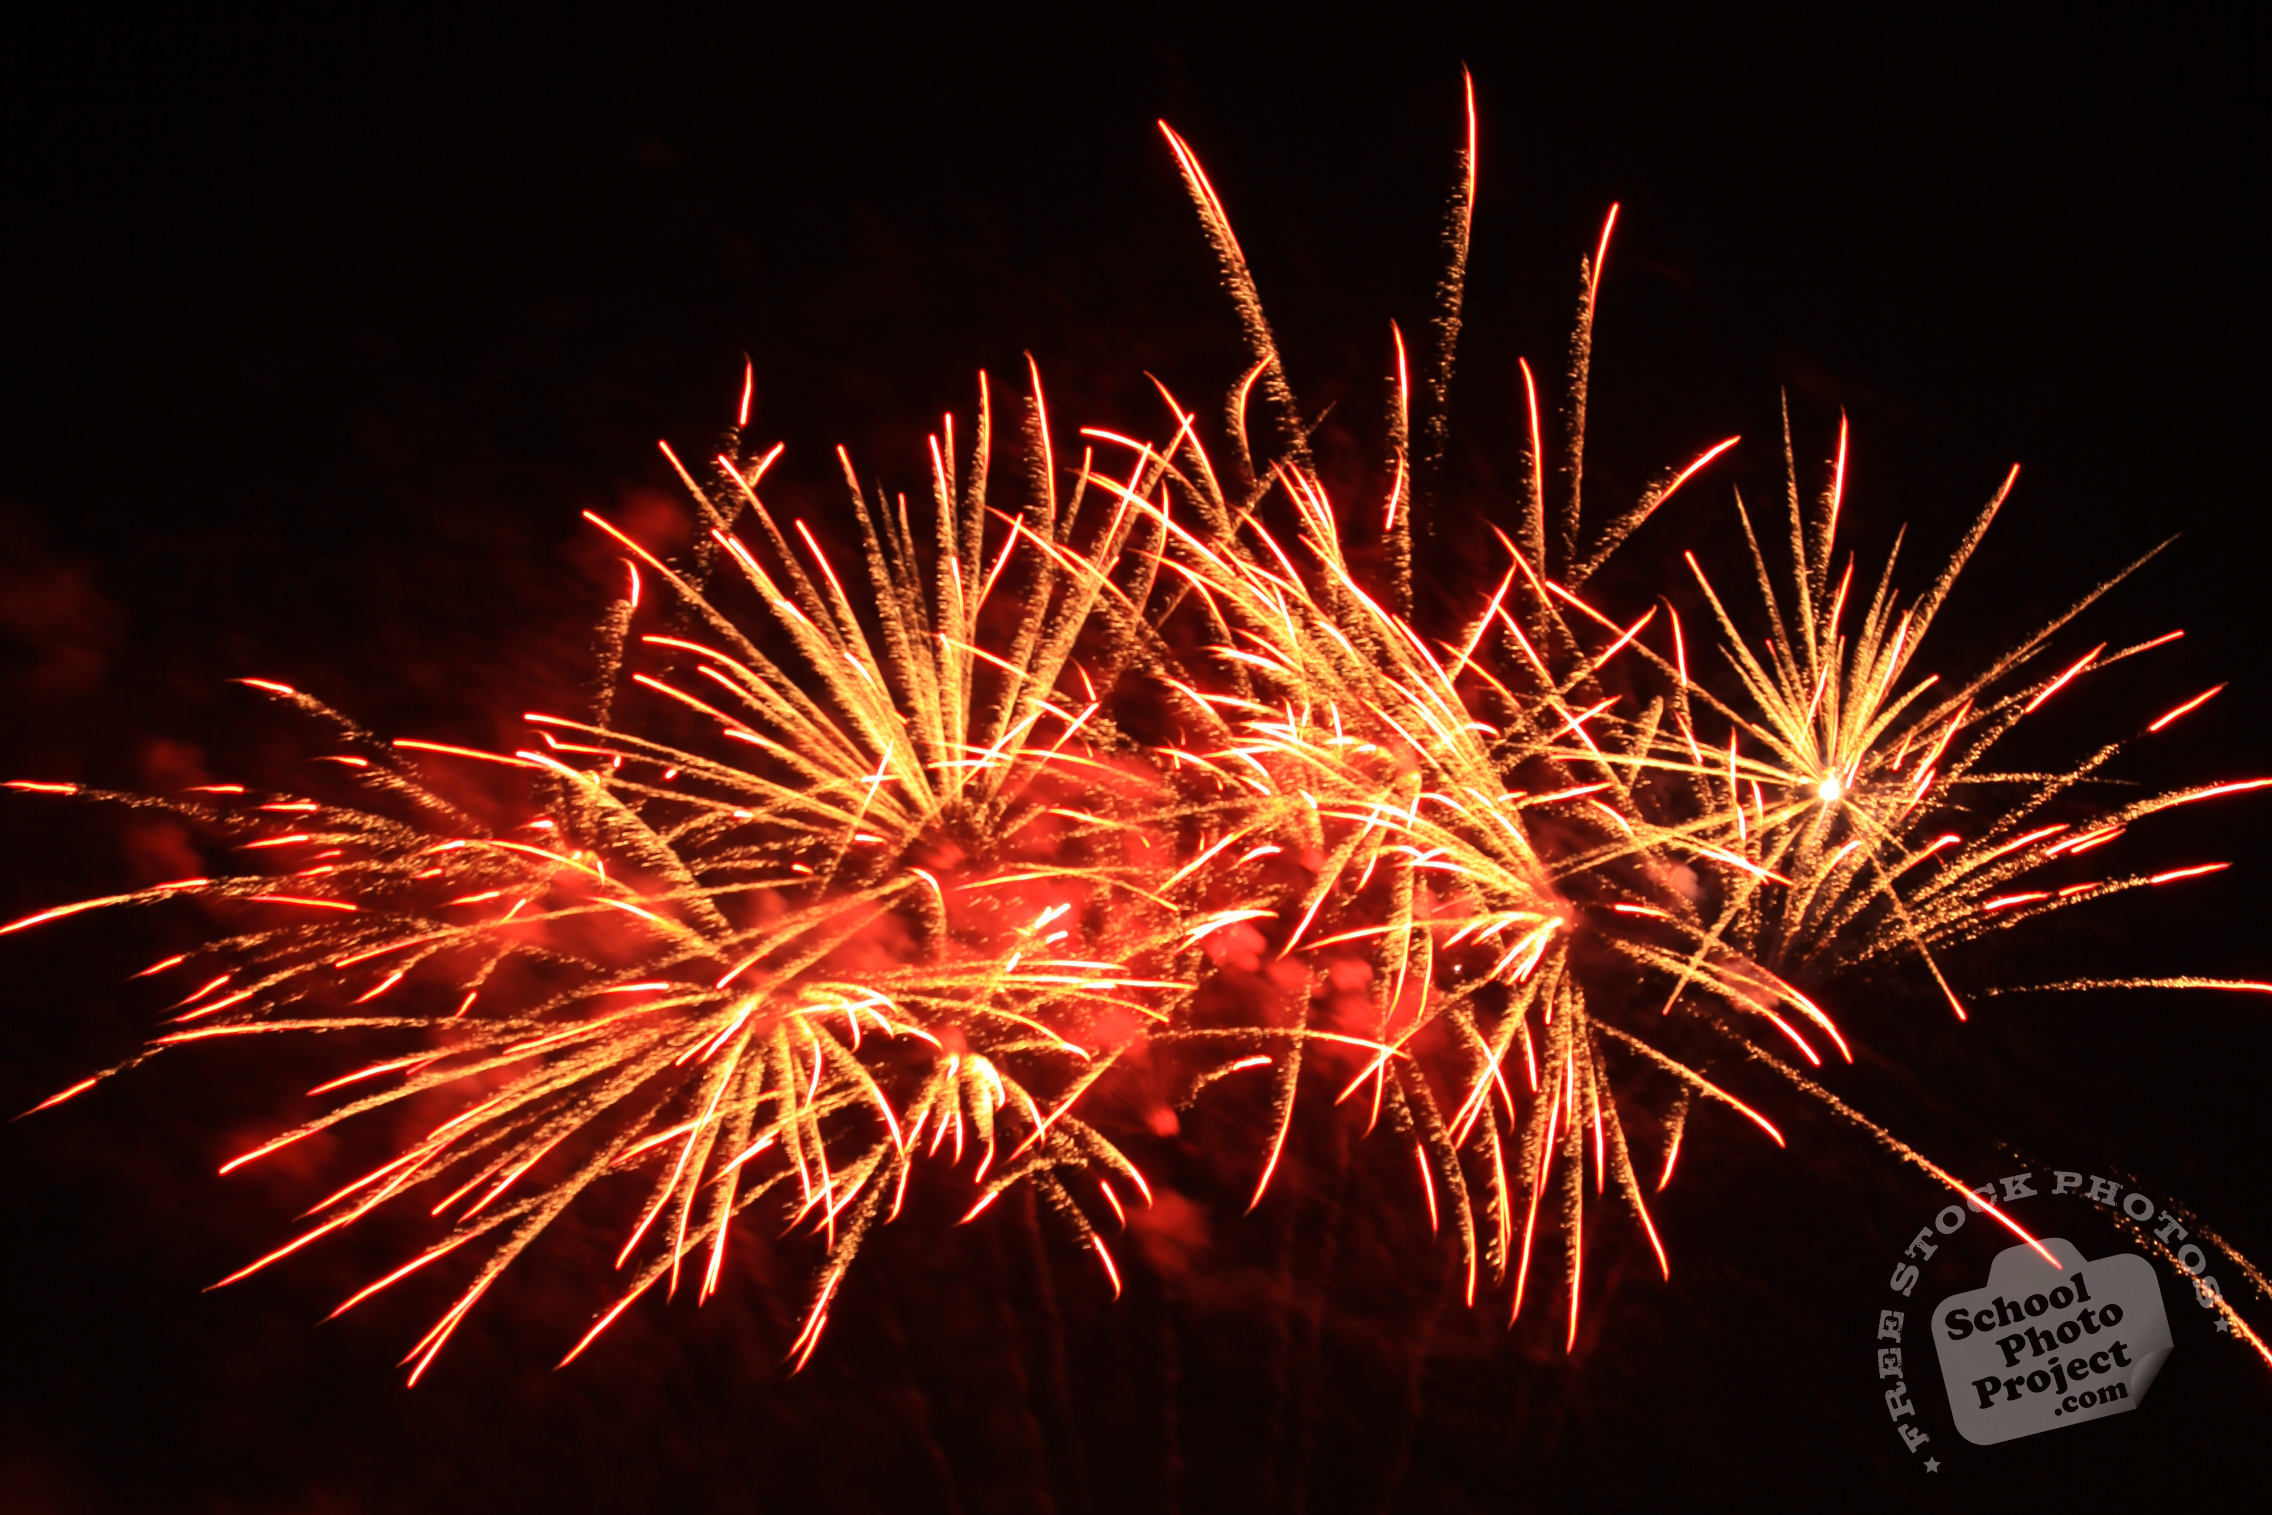 Red Fireworks Free Stock Photo: Diadem Fireworks, FREE Stock Photo, Image, Picture: New